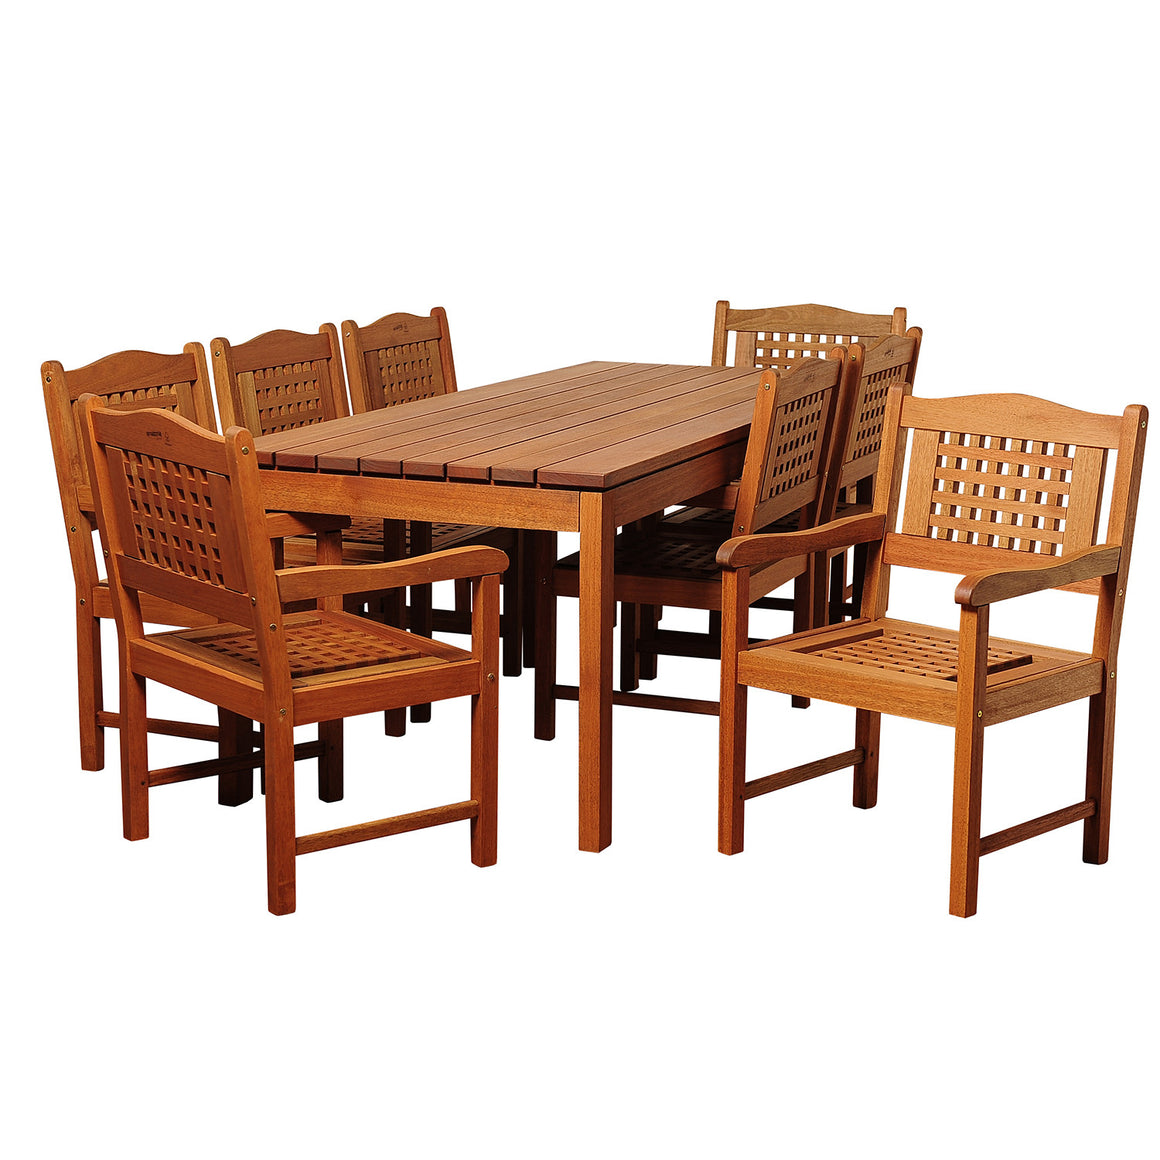 Harrison 9 Piece Eucalyptus Rectangular Patio Dining Set , International Home Miami- grayburd